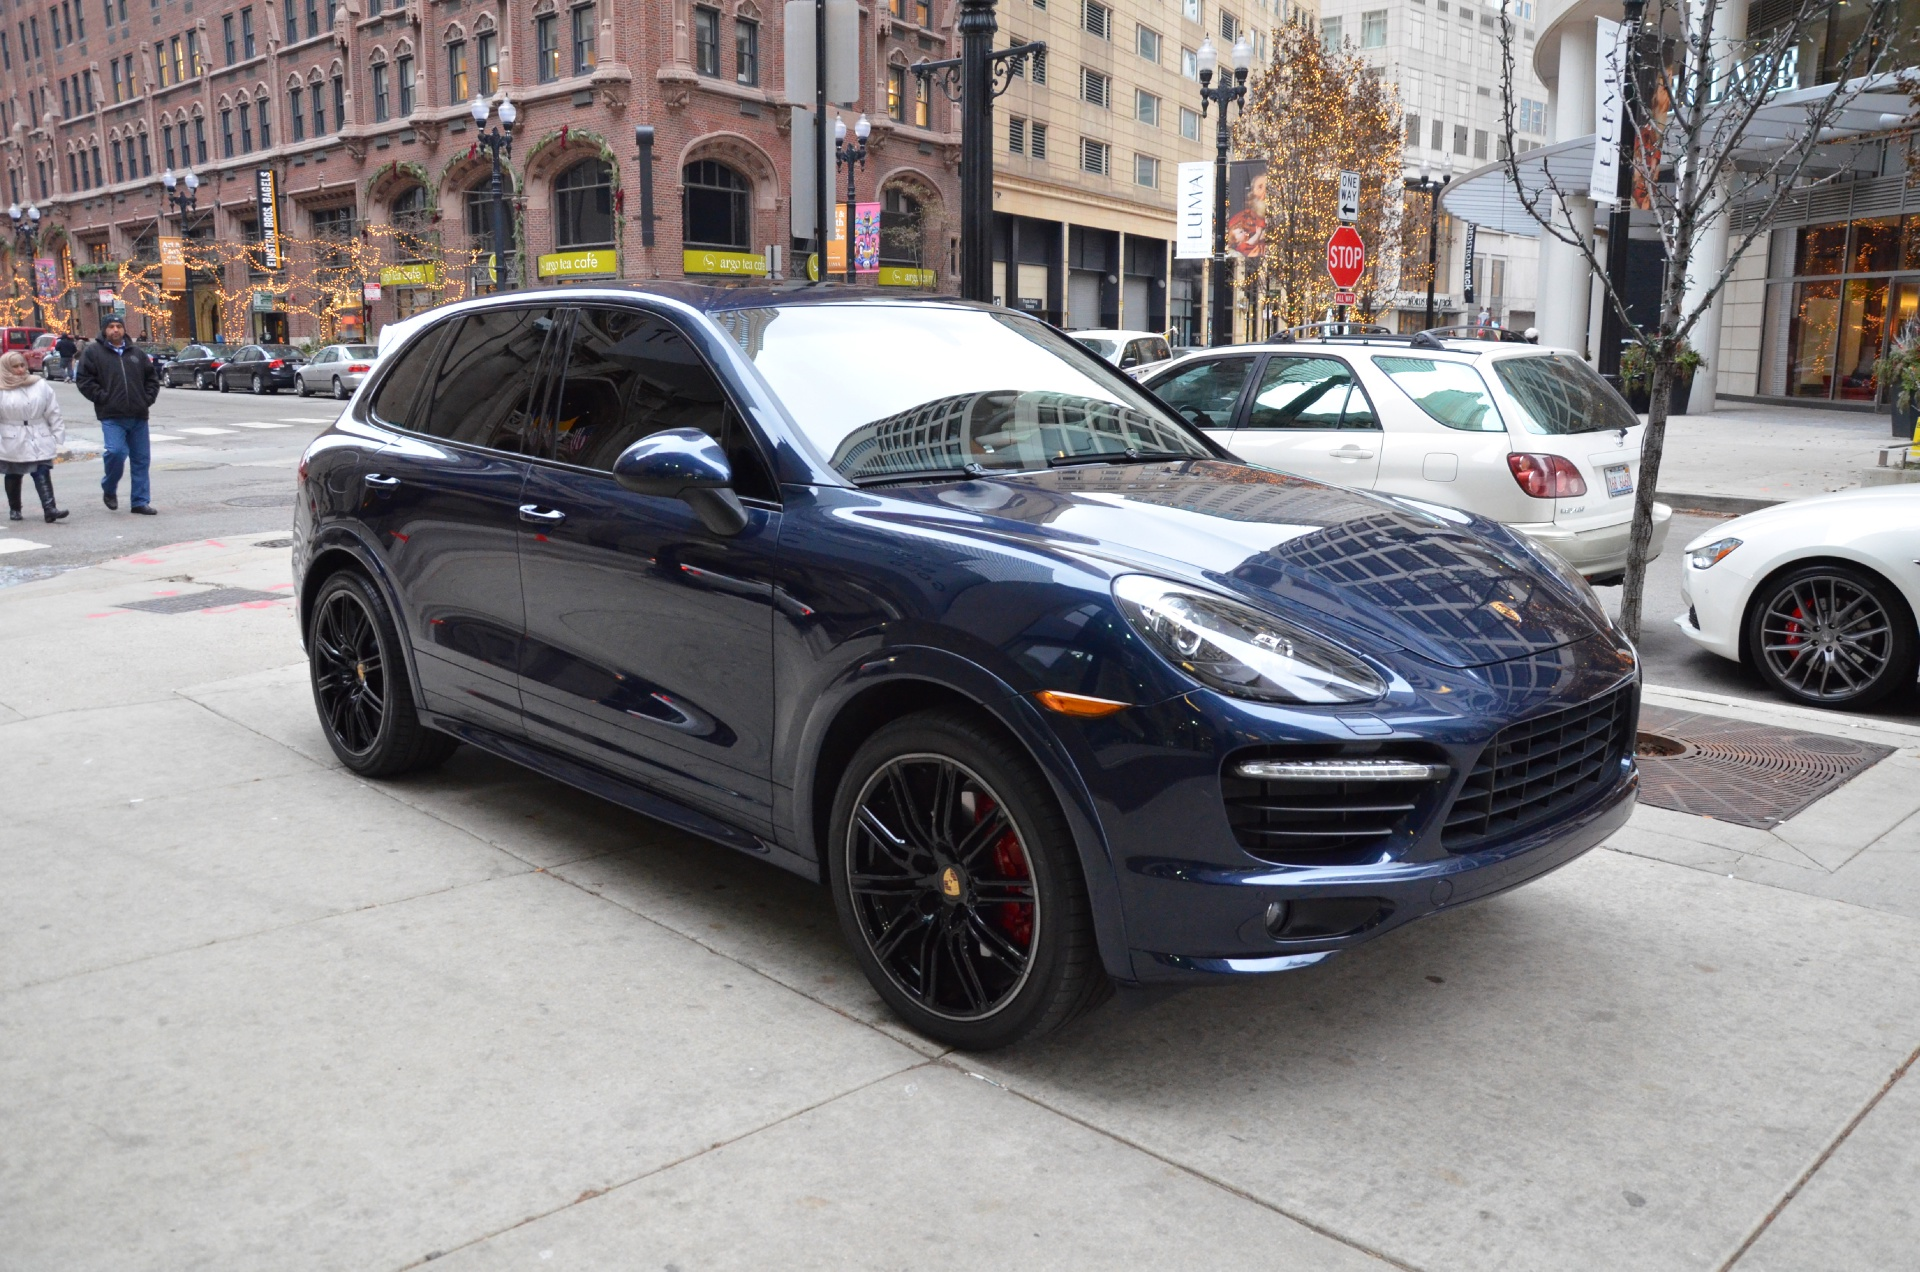 2014 porsche cayenne gts stock b656b for sale near chicago il il porsche dealer. Black Bedroom Furniture Sets. Home Design Ideas